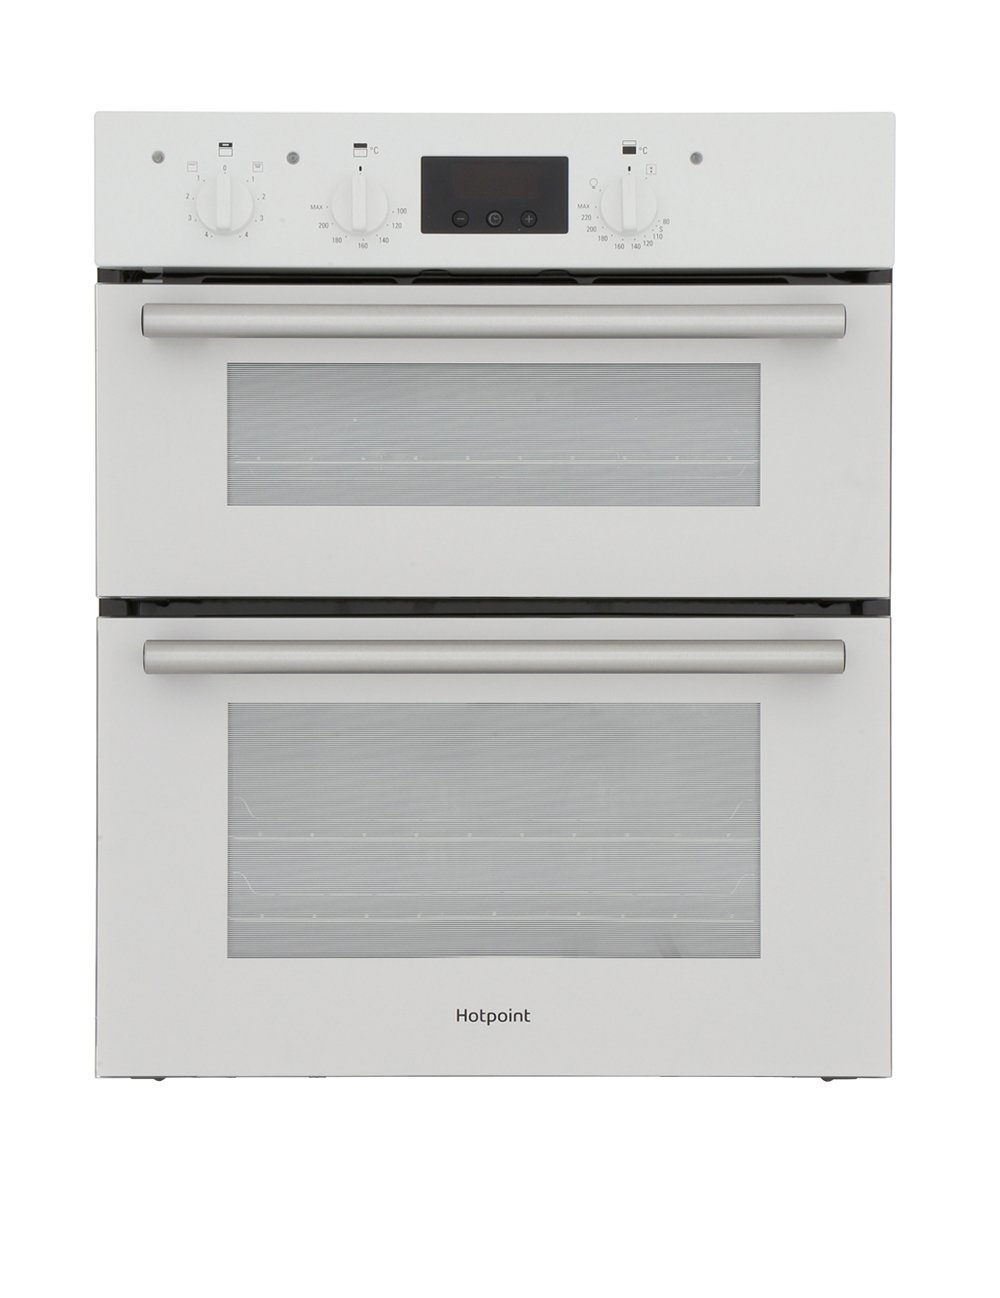 Hotpoint DU2540WH Double Built Under Electric Oven